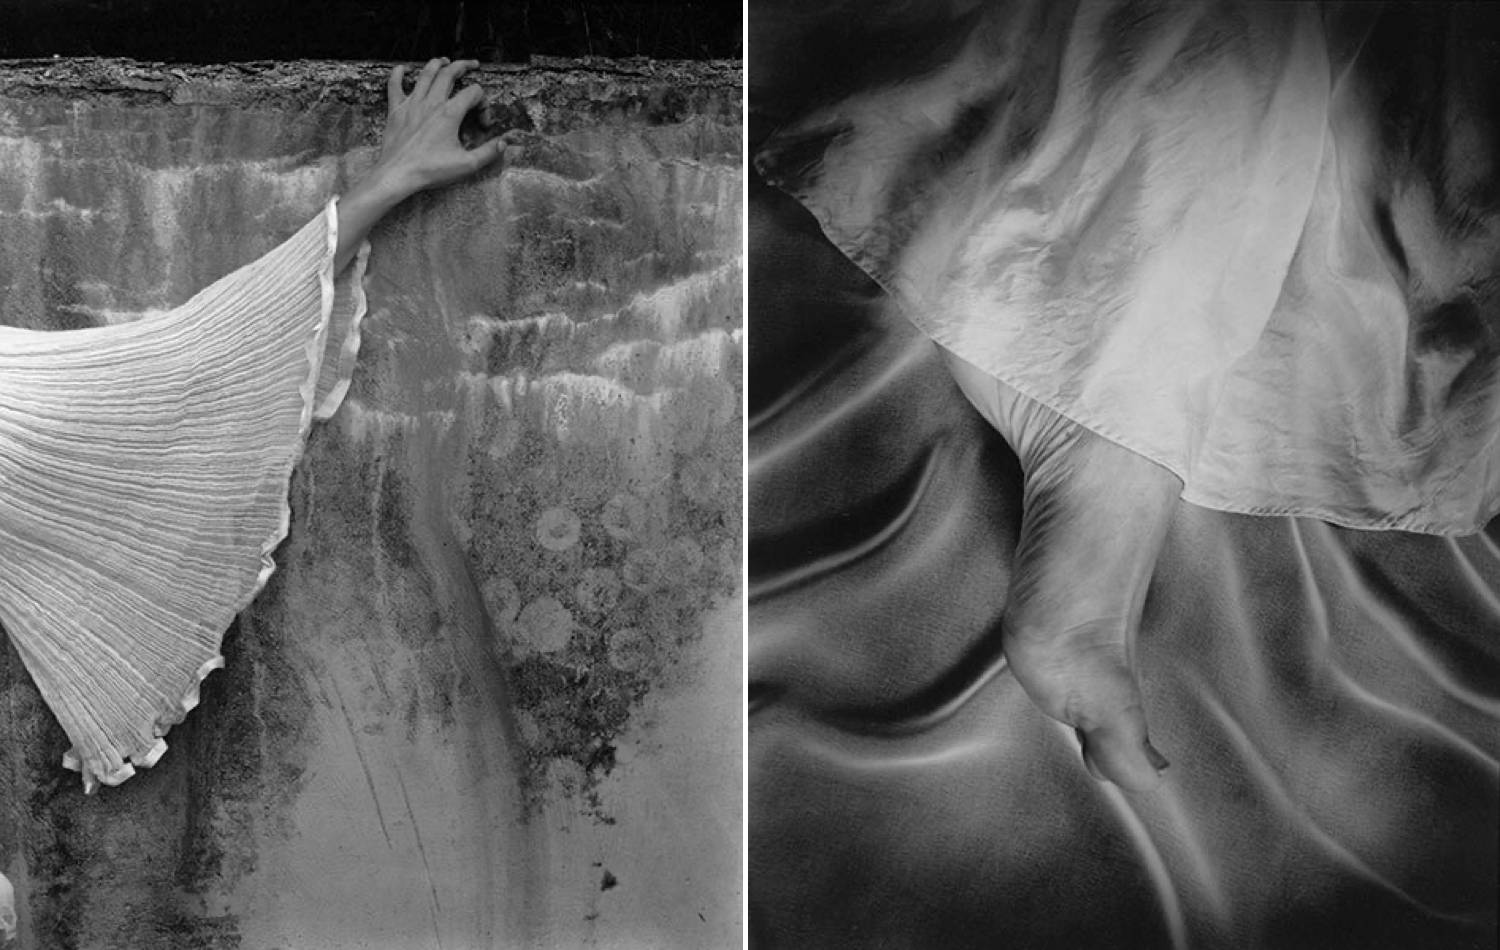 A series of two abstract photographs by Sally Mann